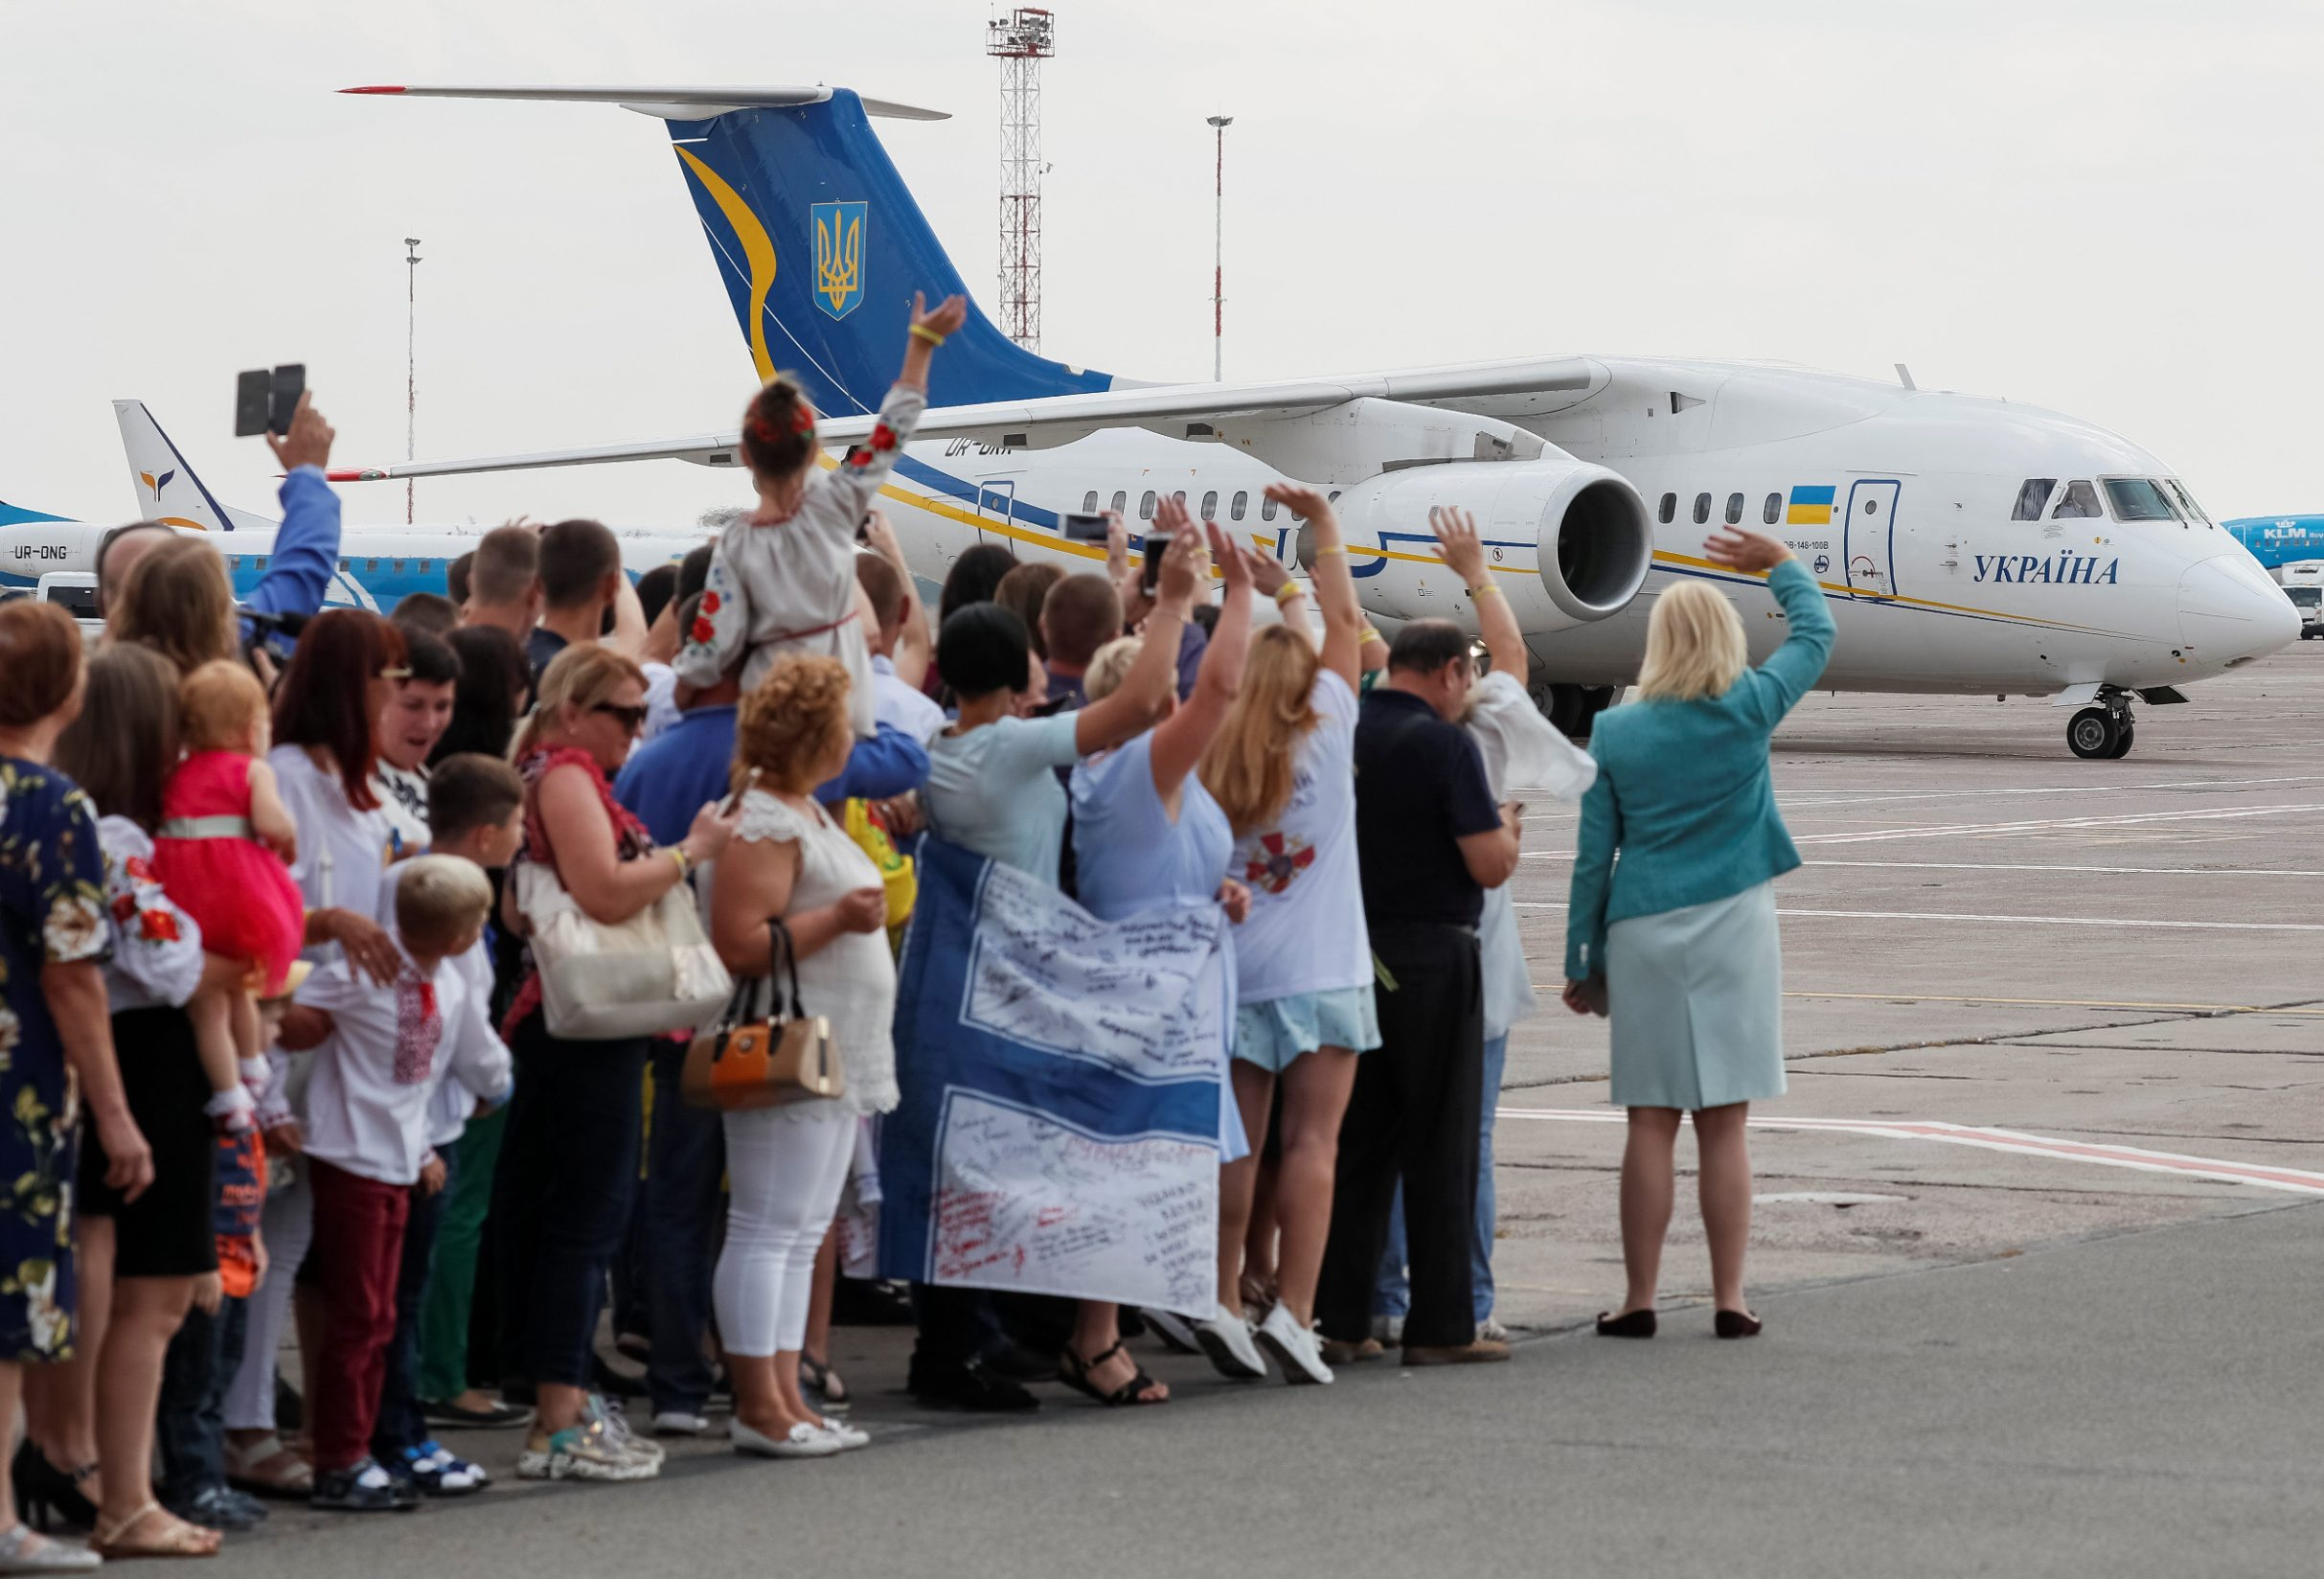 A plane carrying Ukrainian prisoners, included in the Russia-Ukraine prisoner swap, is seen on the tarmac, as prisoners' relatives greet them at Borispil International Airport, outside Kiev, Ukraine September 7, 2019. REUTERS/Gleb Garanich